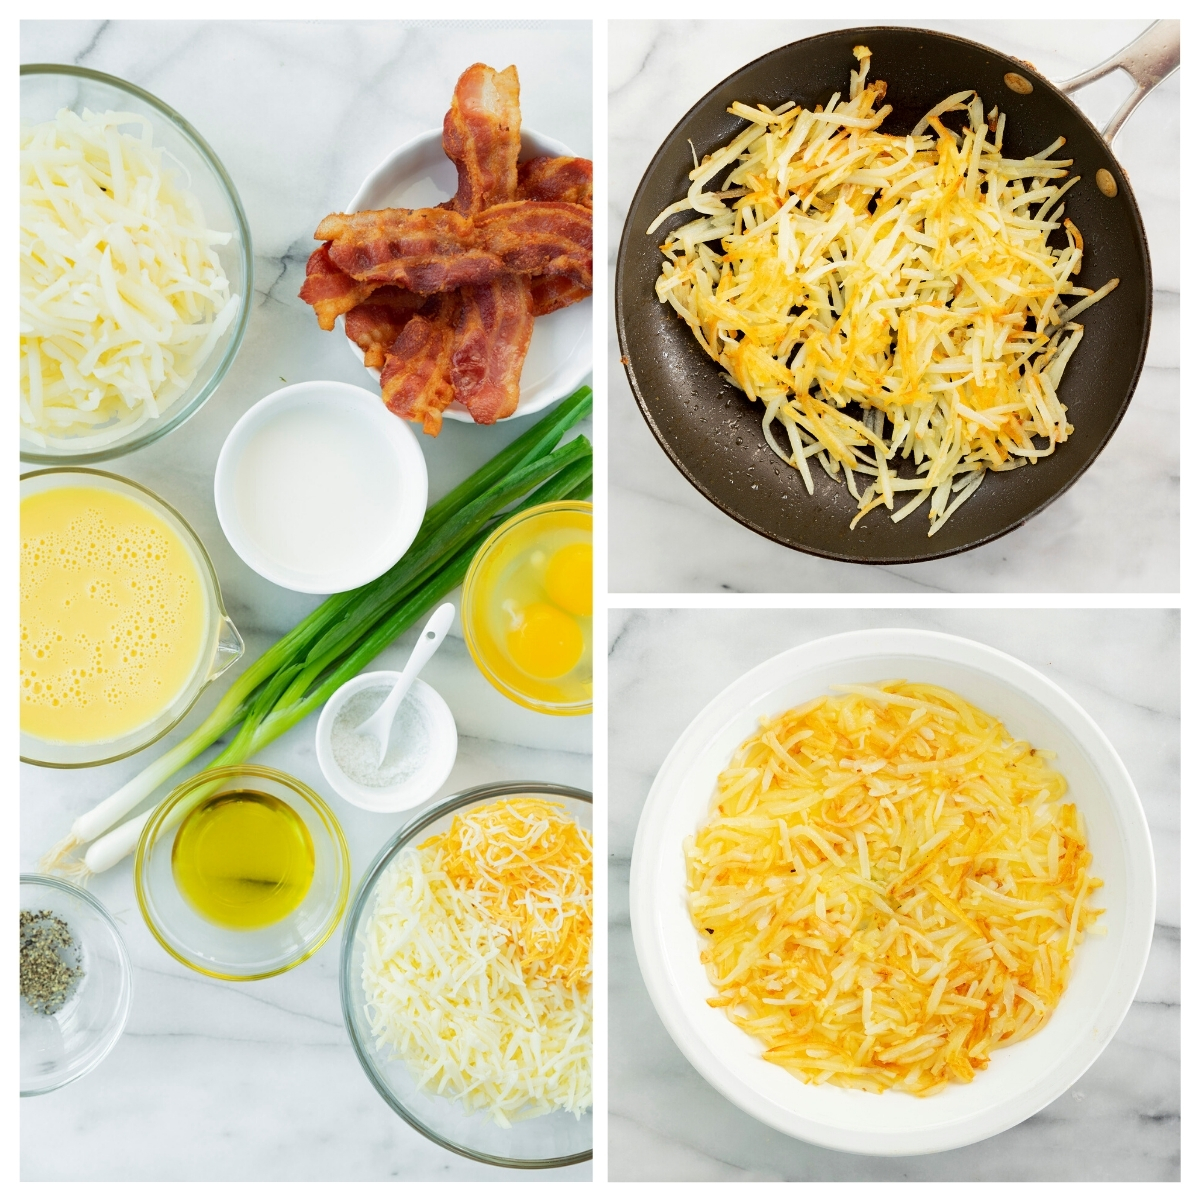 collage of ingredients and cooking hash browns for quiche